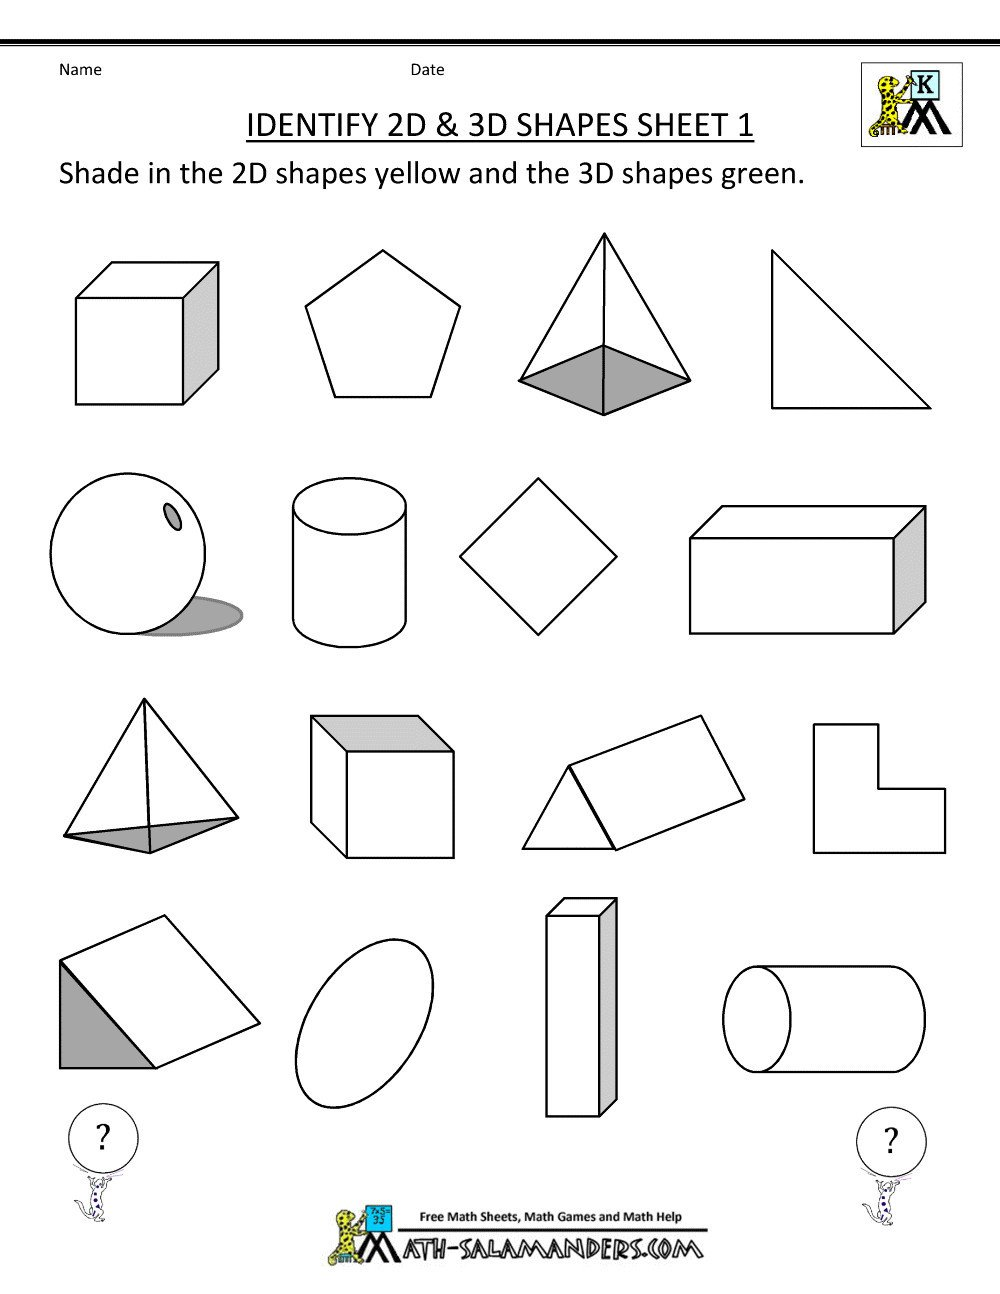 free math worksheets first grade 1 geometry draw 2d shapes